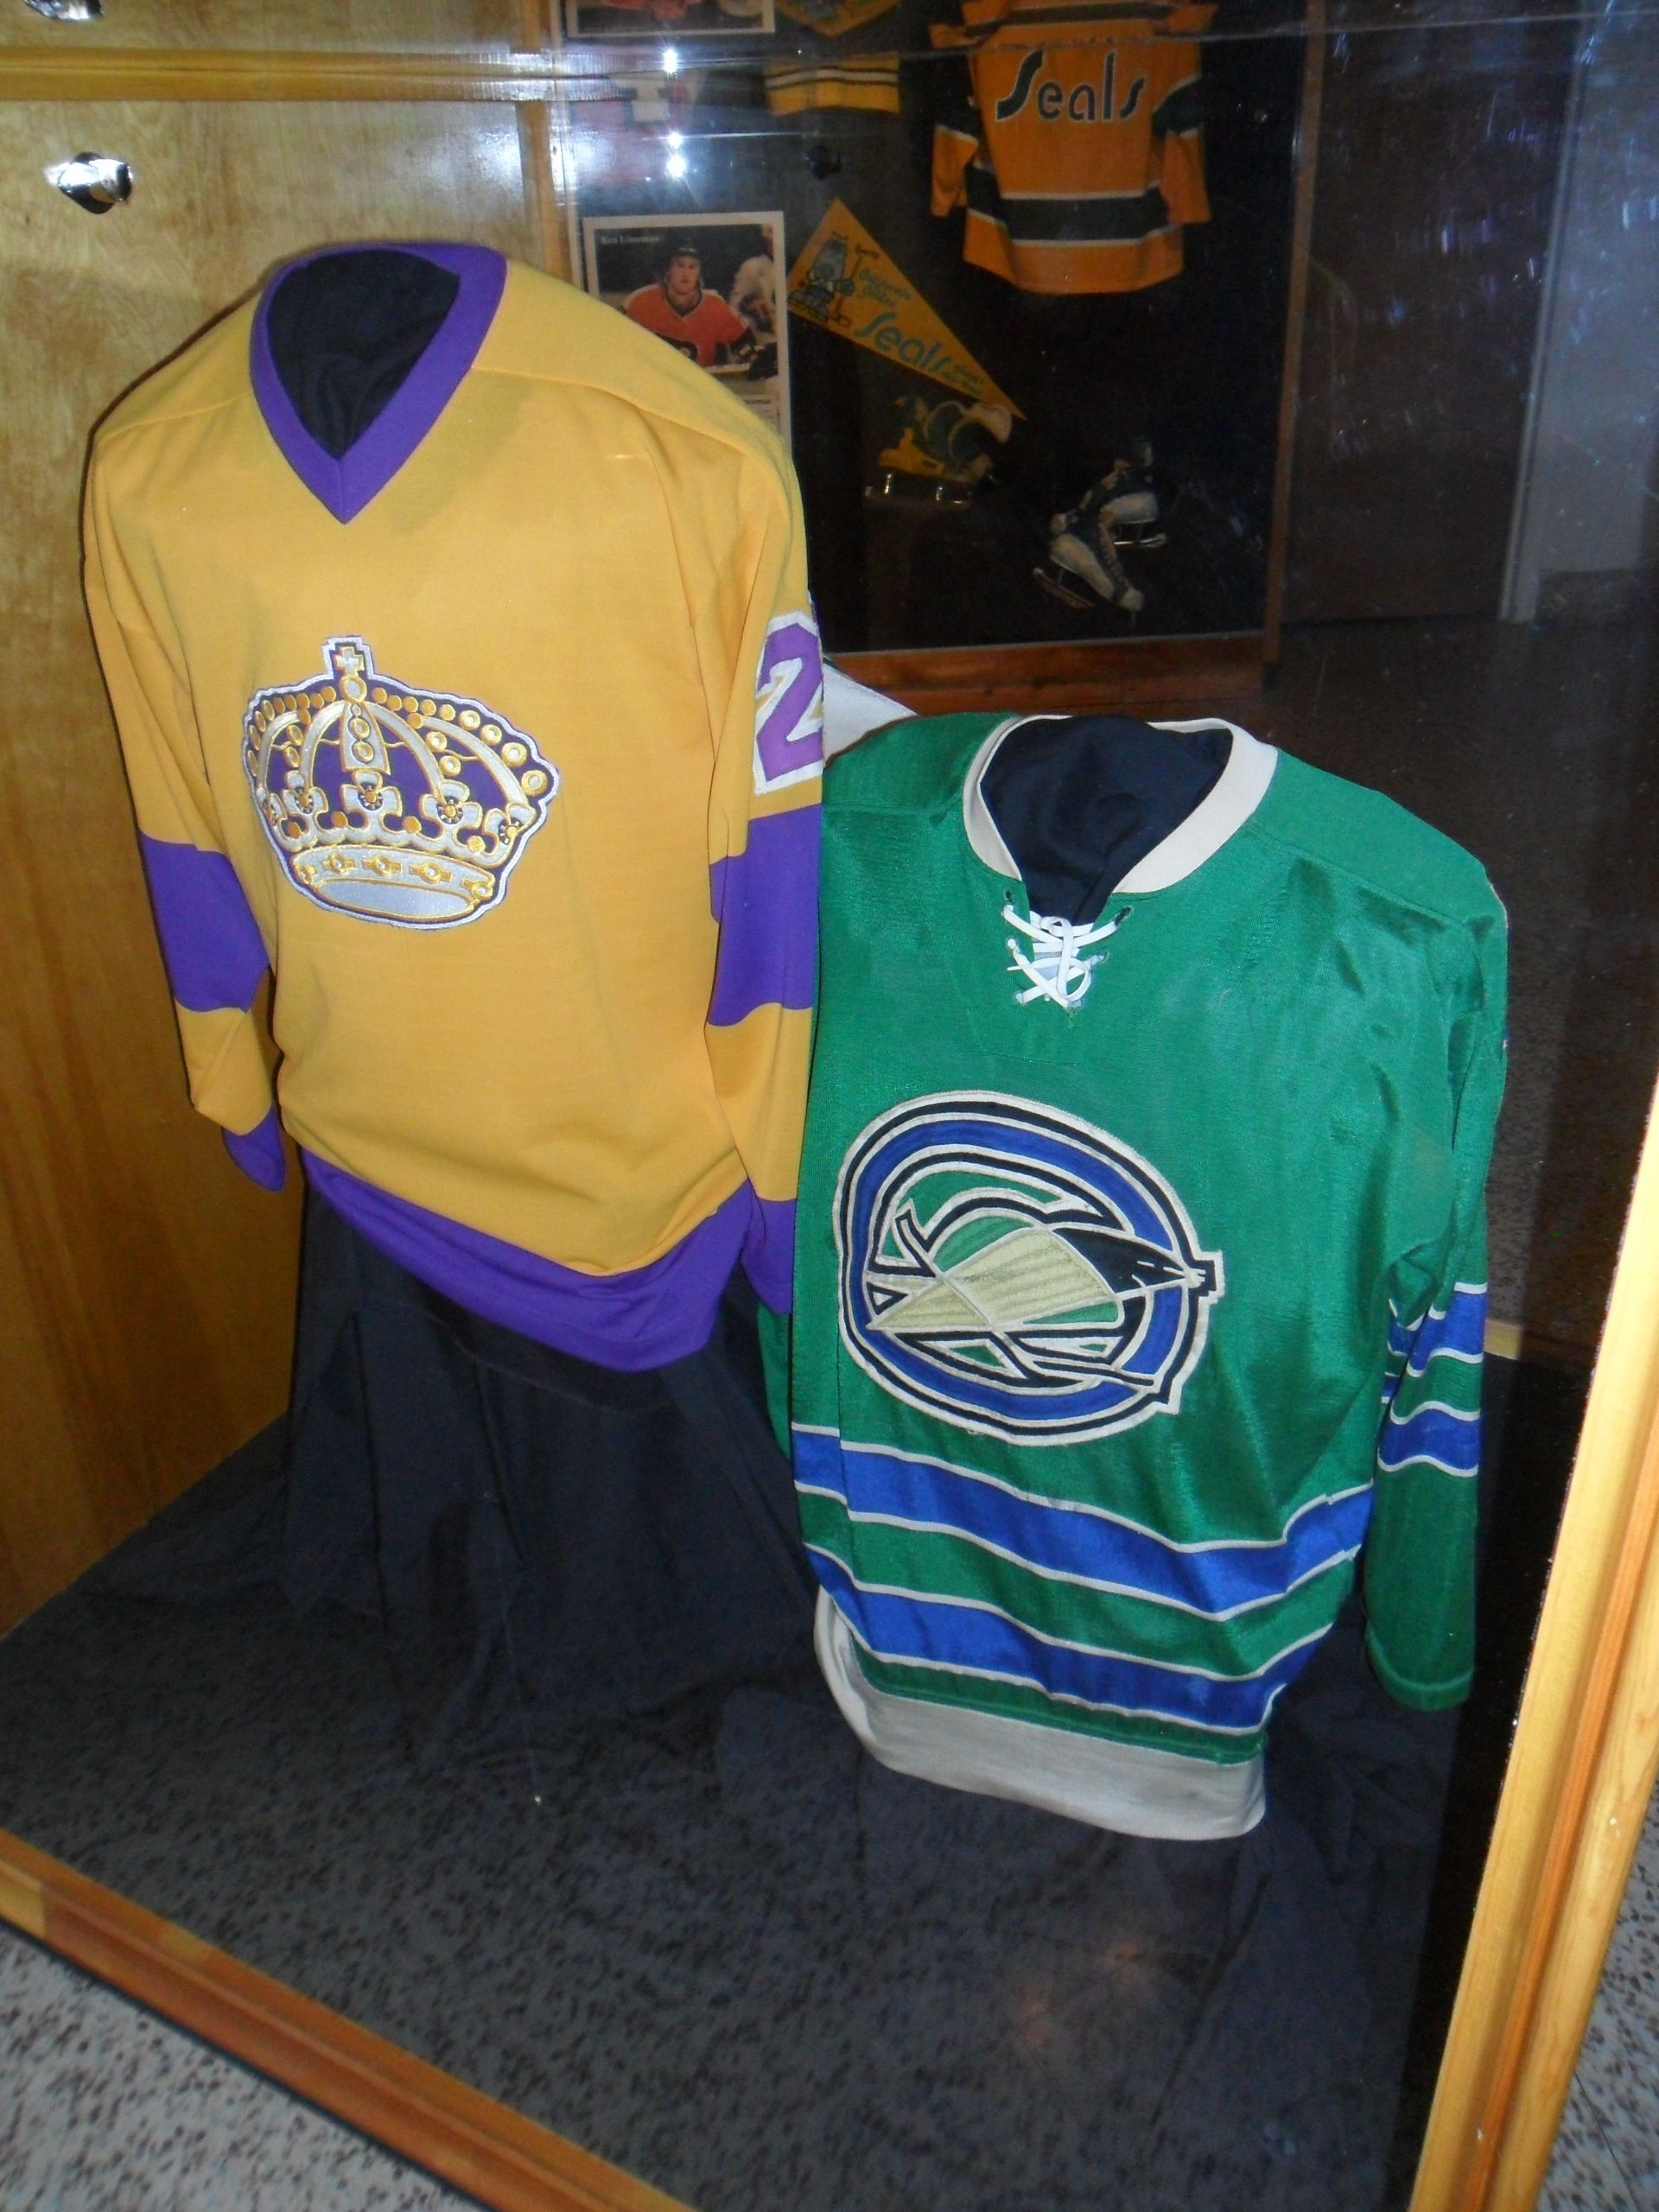 1c7576c64 File LA Kings jersey and Oakland Seals jersey at IHHOF.JPG ...